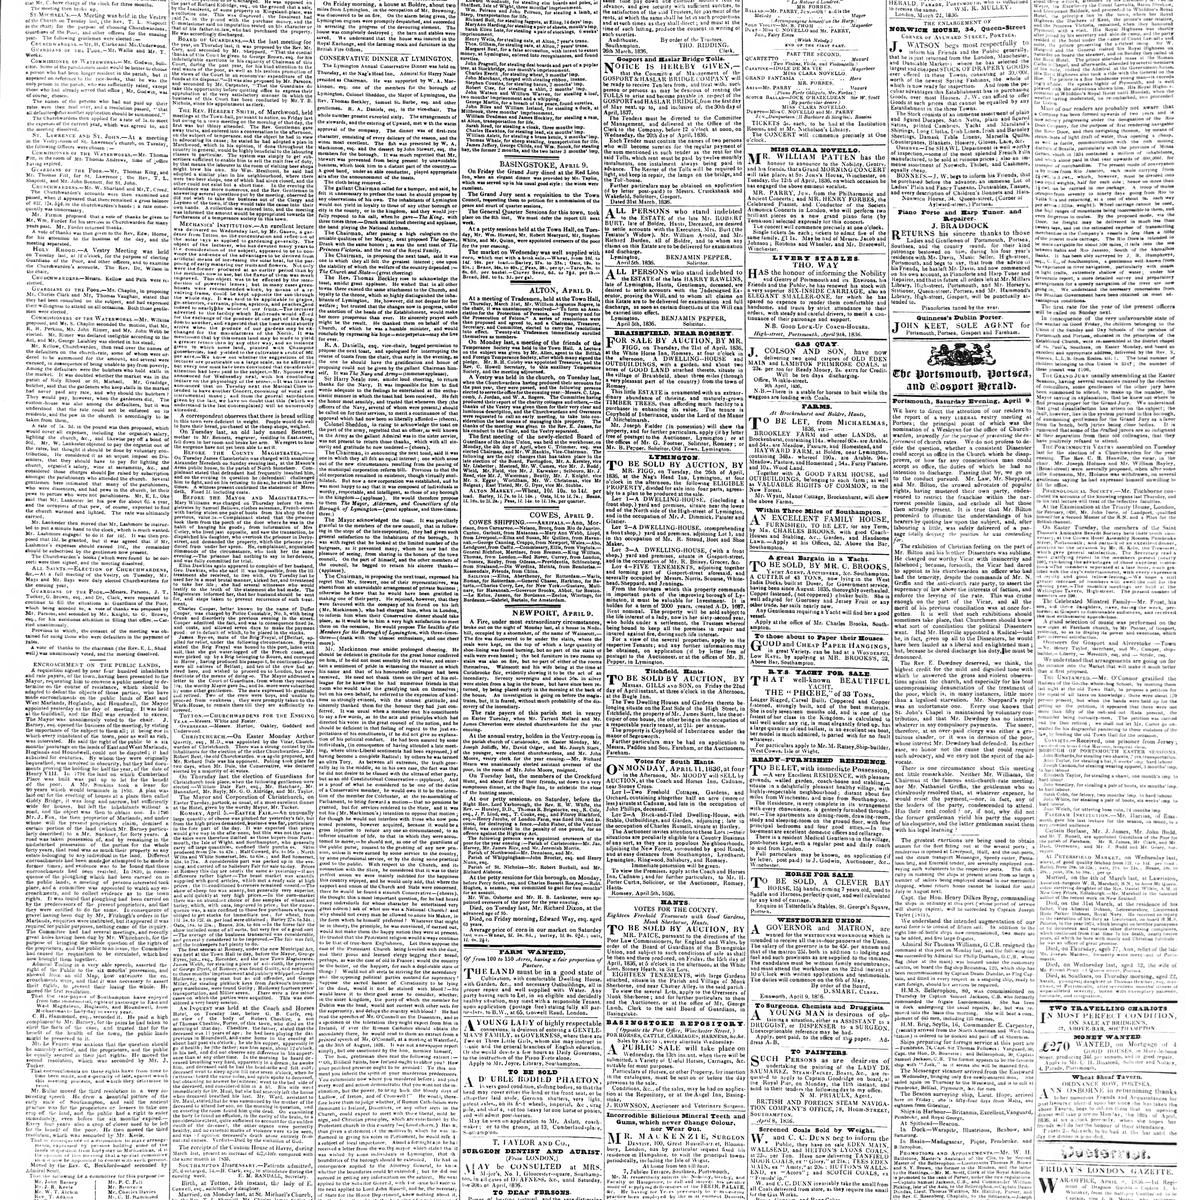 The Hampshire Advertiser, 1836-04-09, page 3